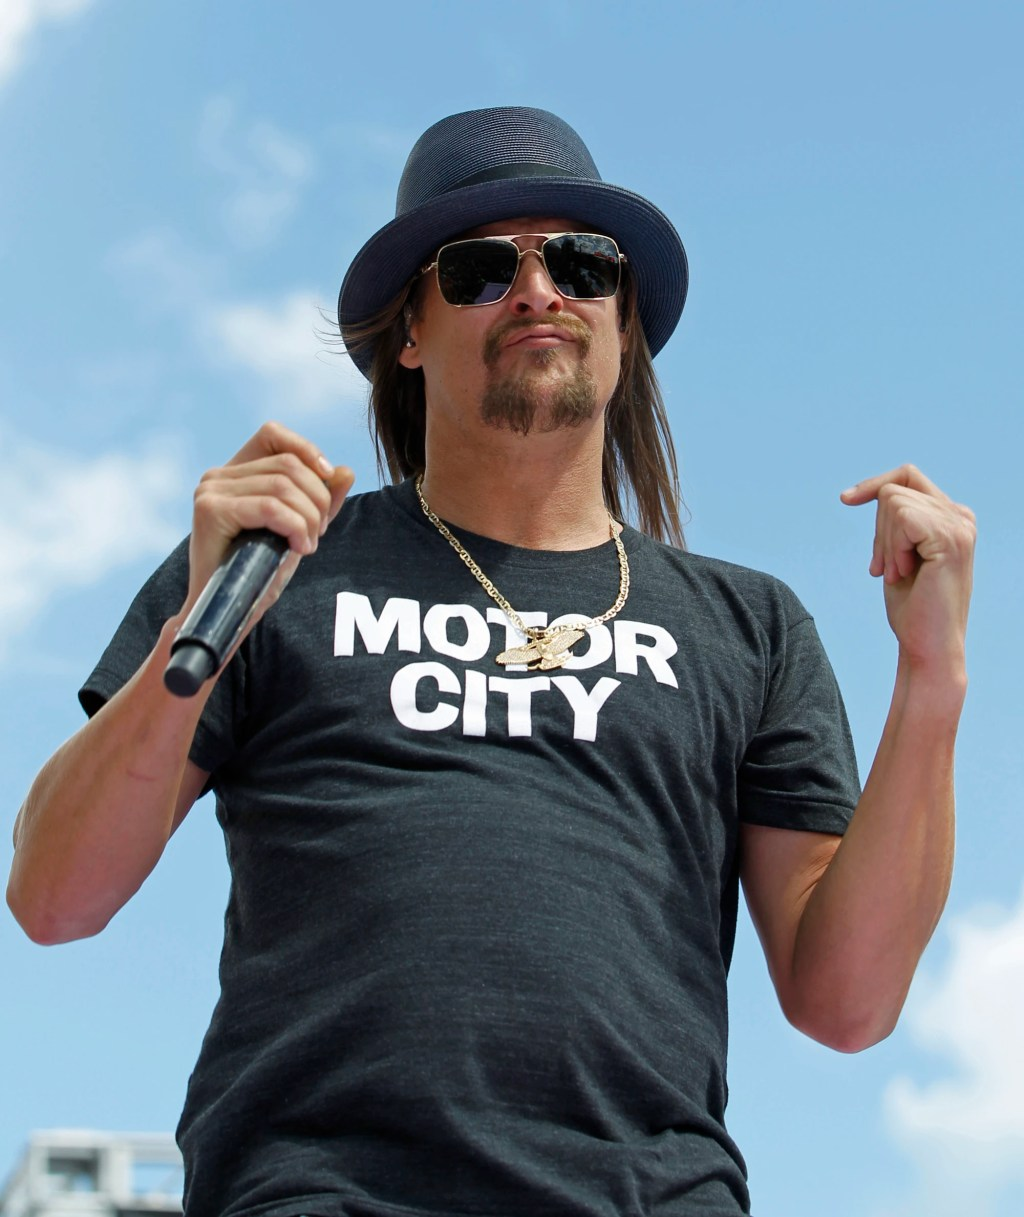 Kid Rock has special message for liberals and media who think 'deprogramming' Trump supporters is a good idea